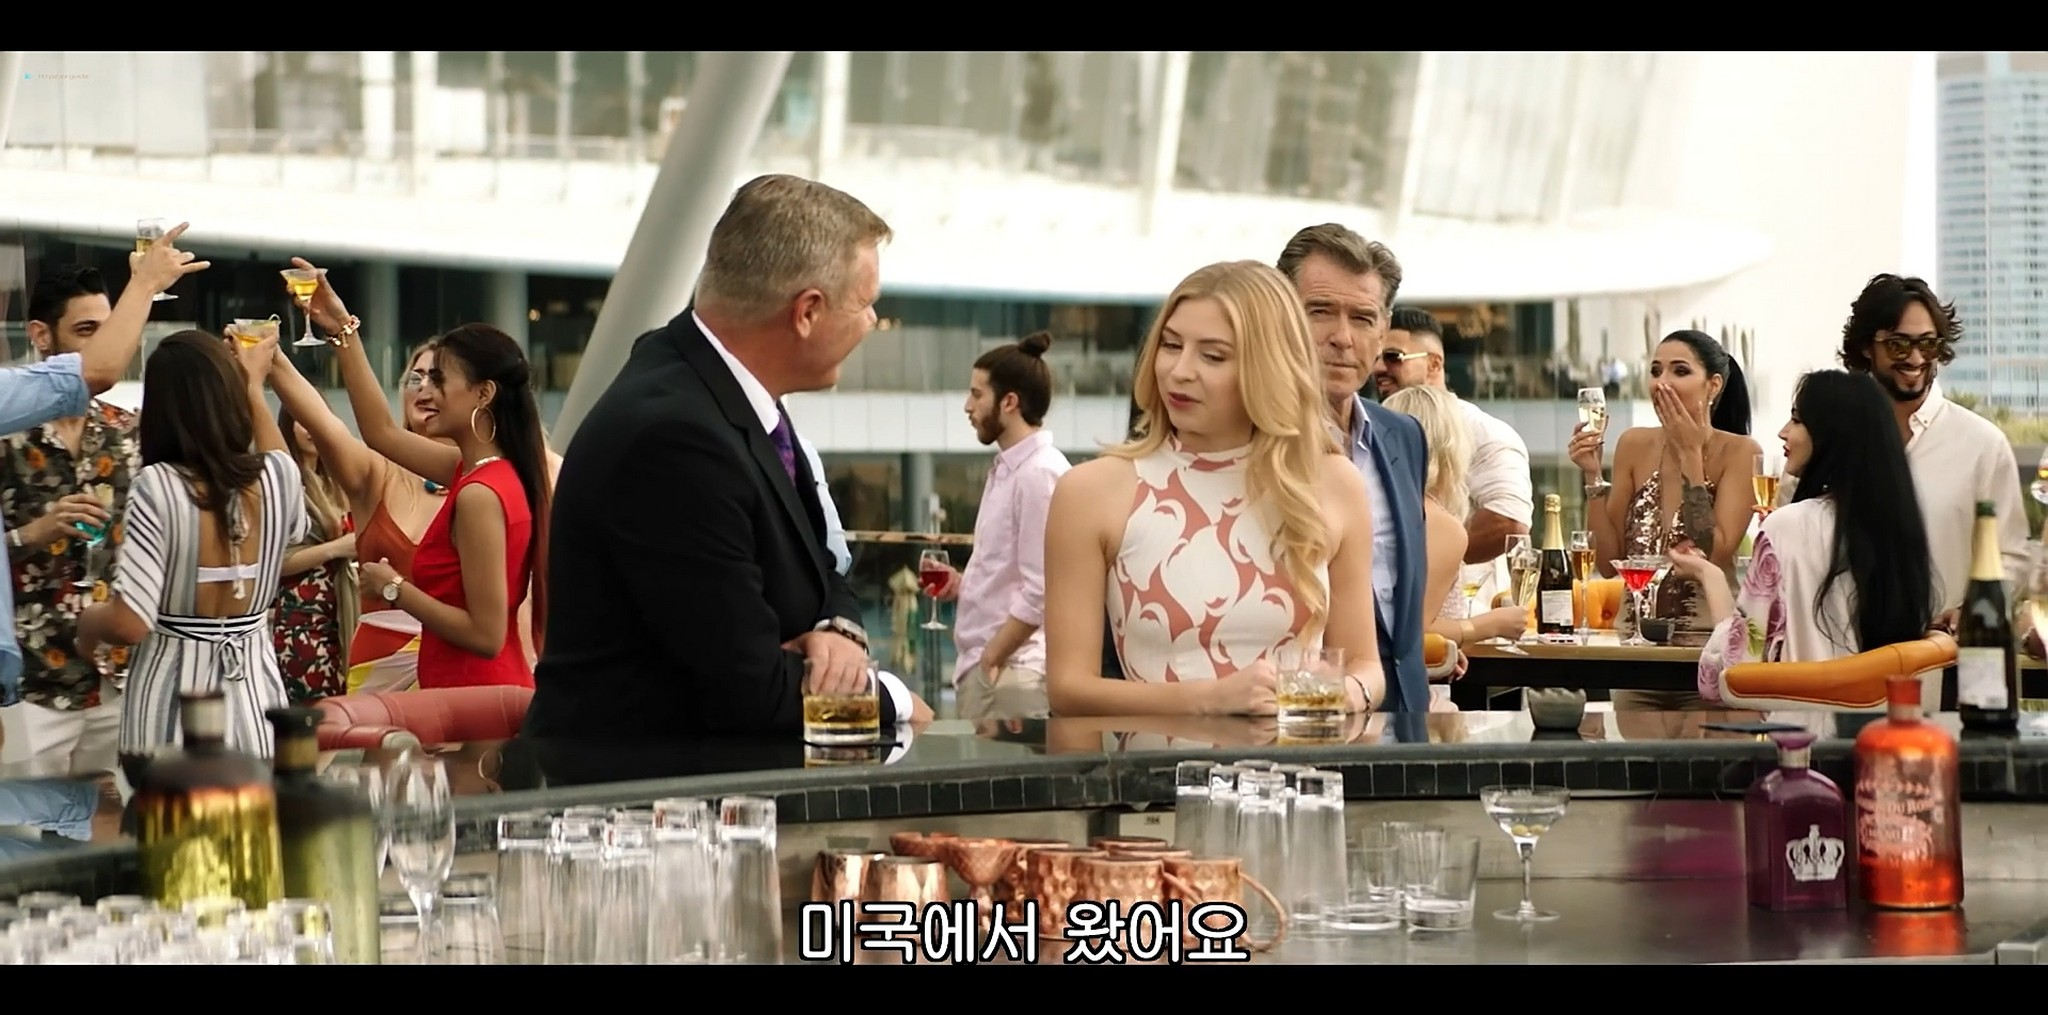 Hermione Corfield hot Jamie Chung sexy The Misfits 2021 1080p Web